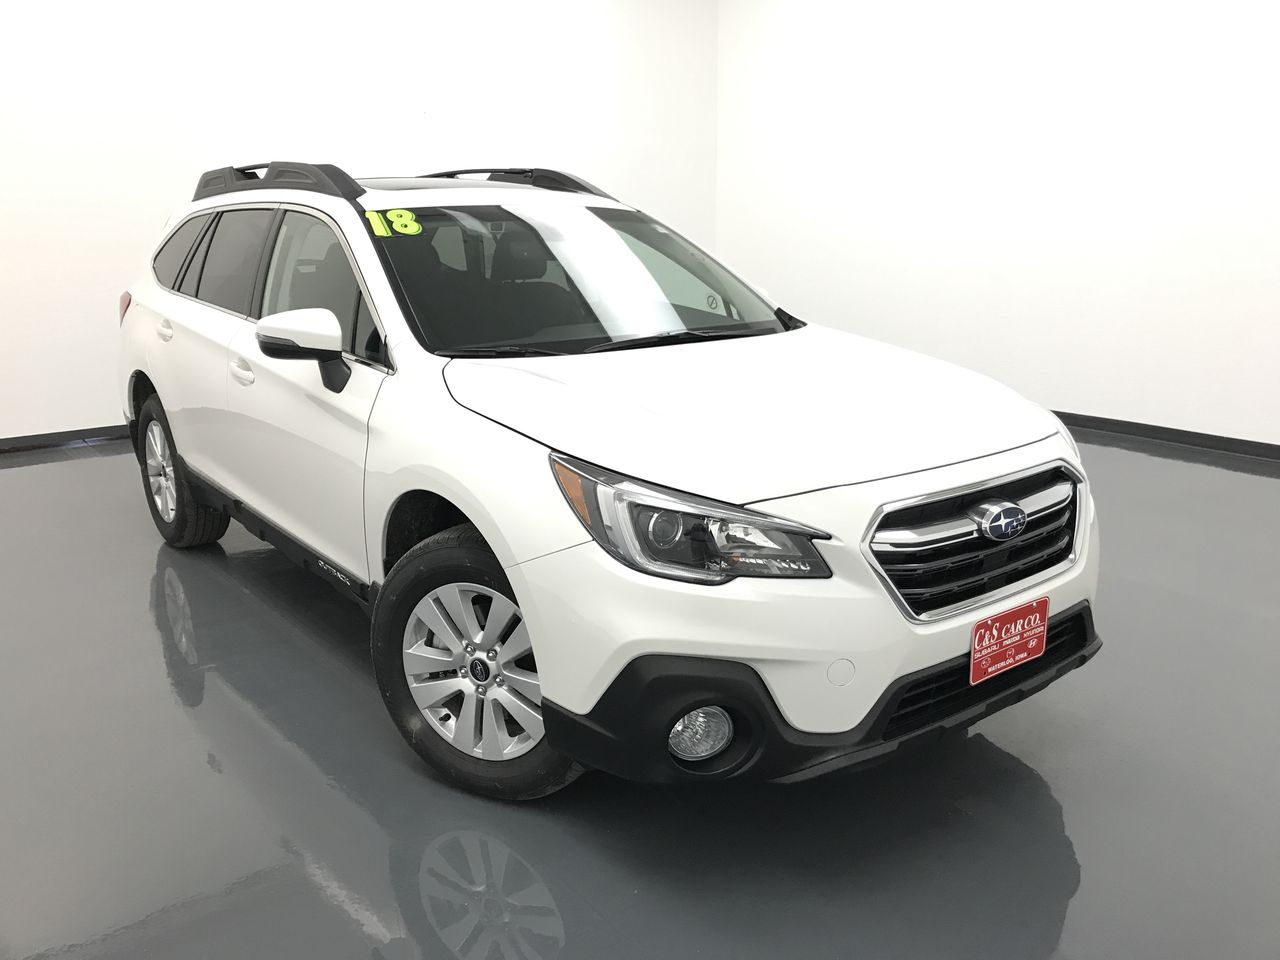 2018 Subaru Outback 2.5i Premium w/Eyesight  - SC7006  - C & S Car Company